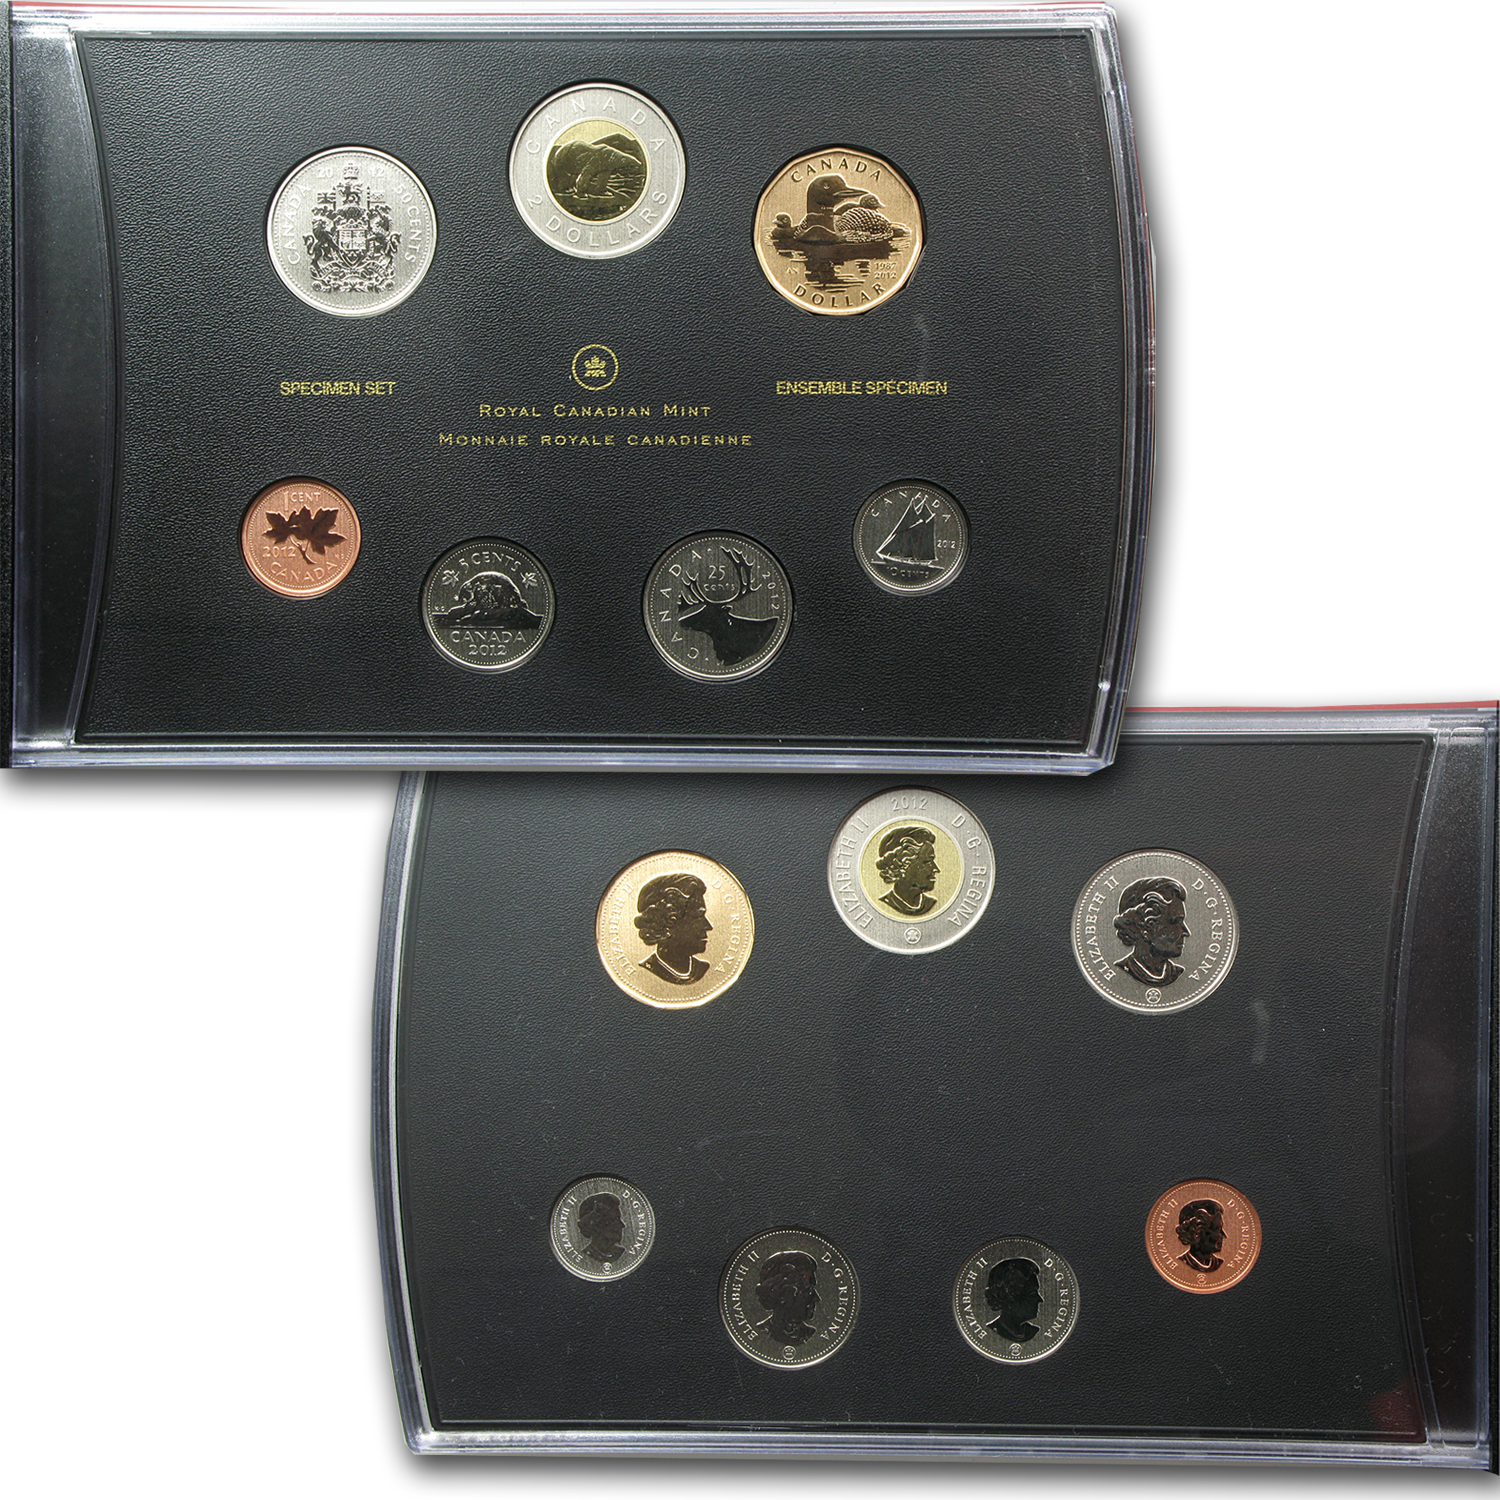 2012 7-Coin RCM 25th Anniv Loonie Special Edition Specimen Set